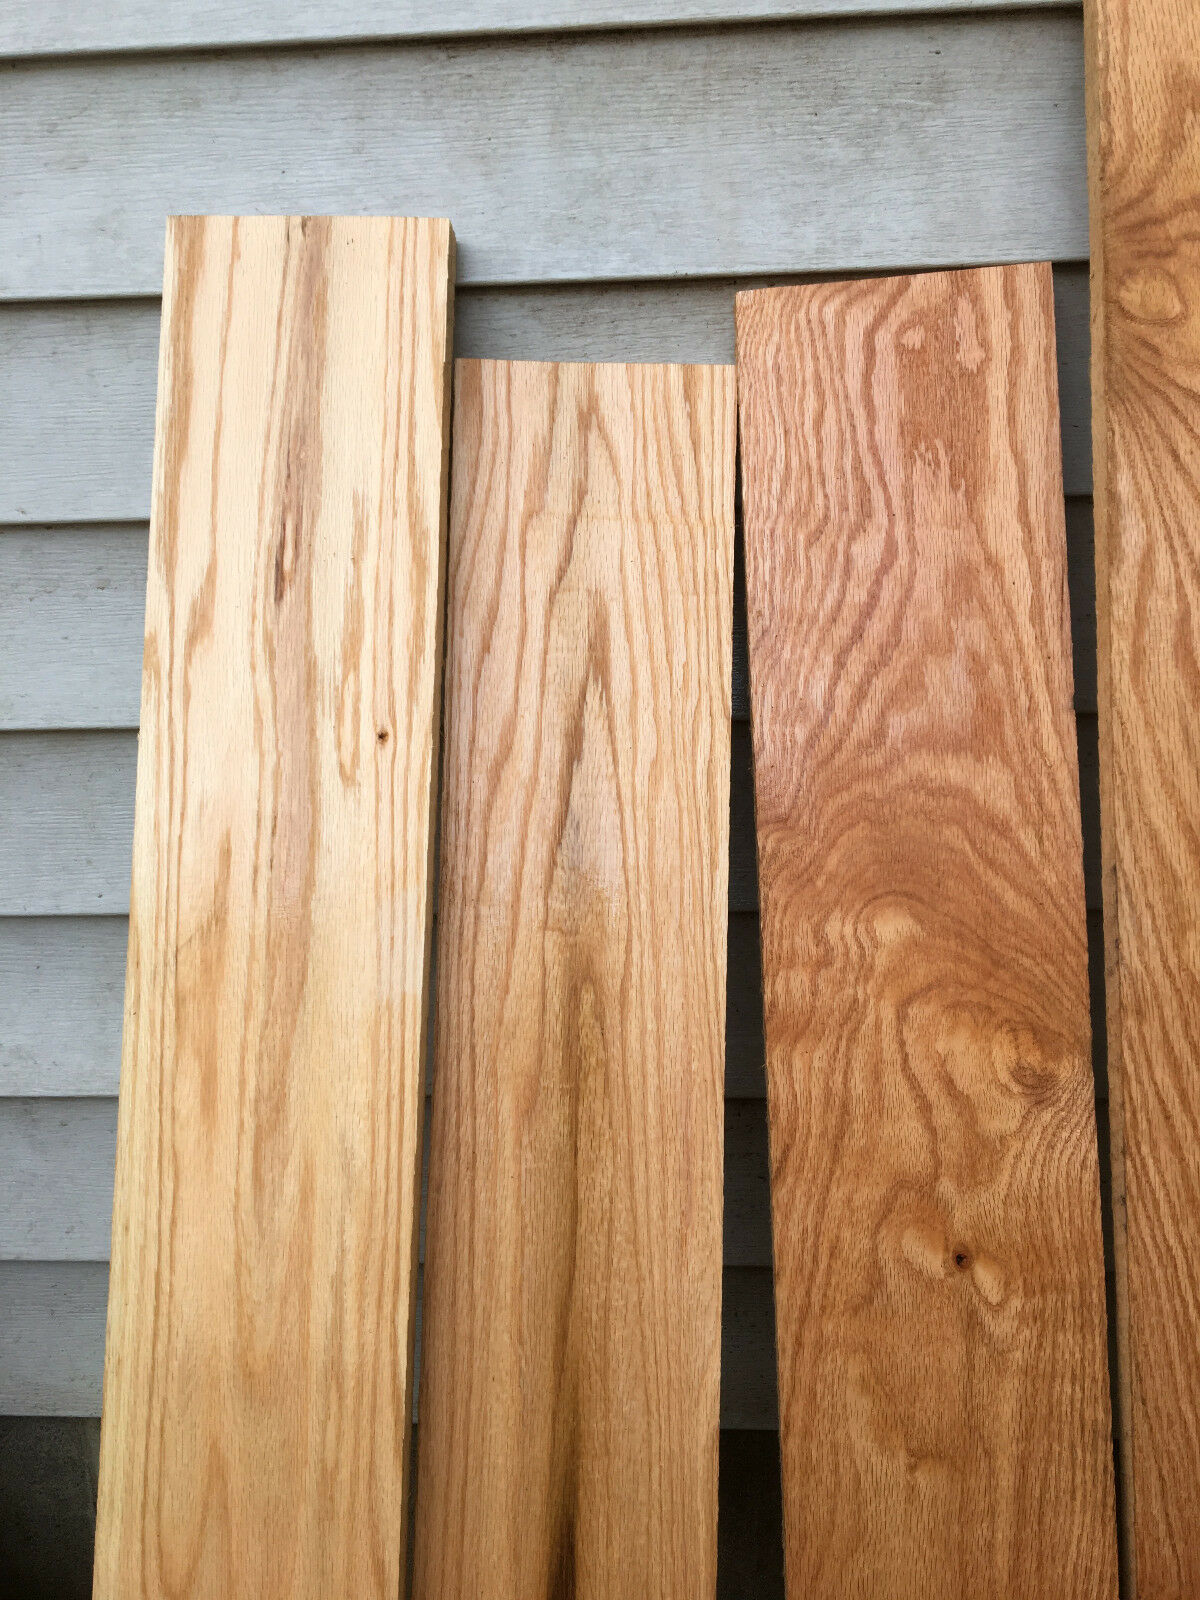 "CHERRY LUMBER 3//8/"" x 2-2.75/"" x 47/"" HARDWOOD THIN WOOD"